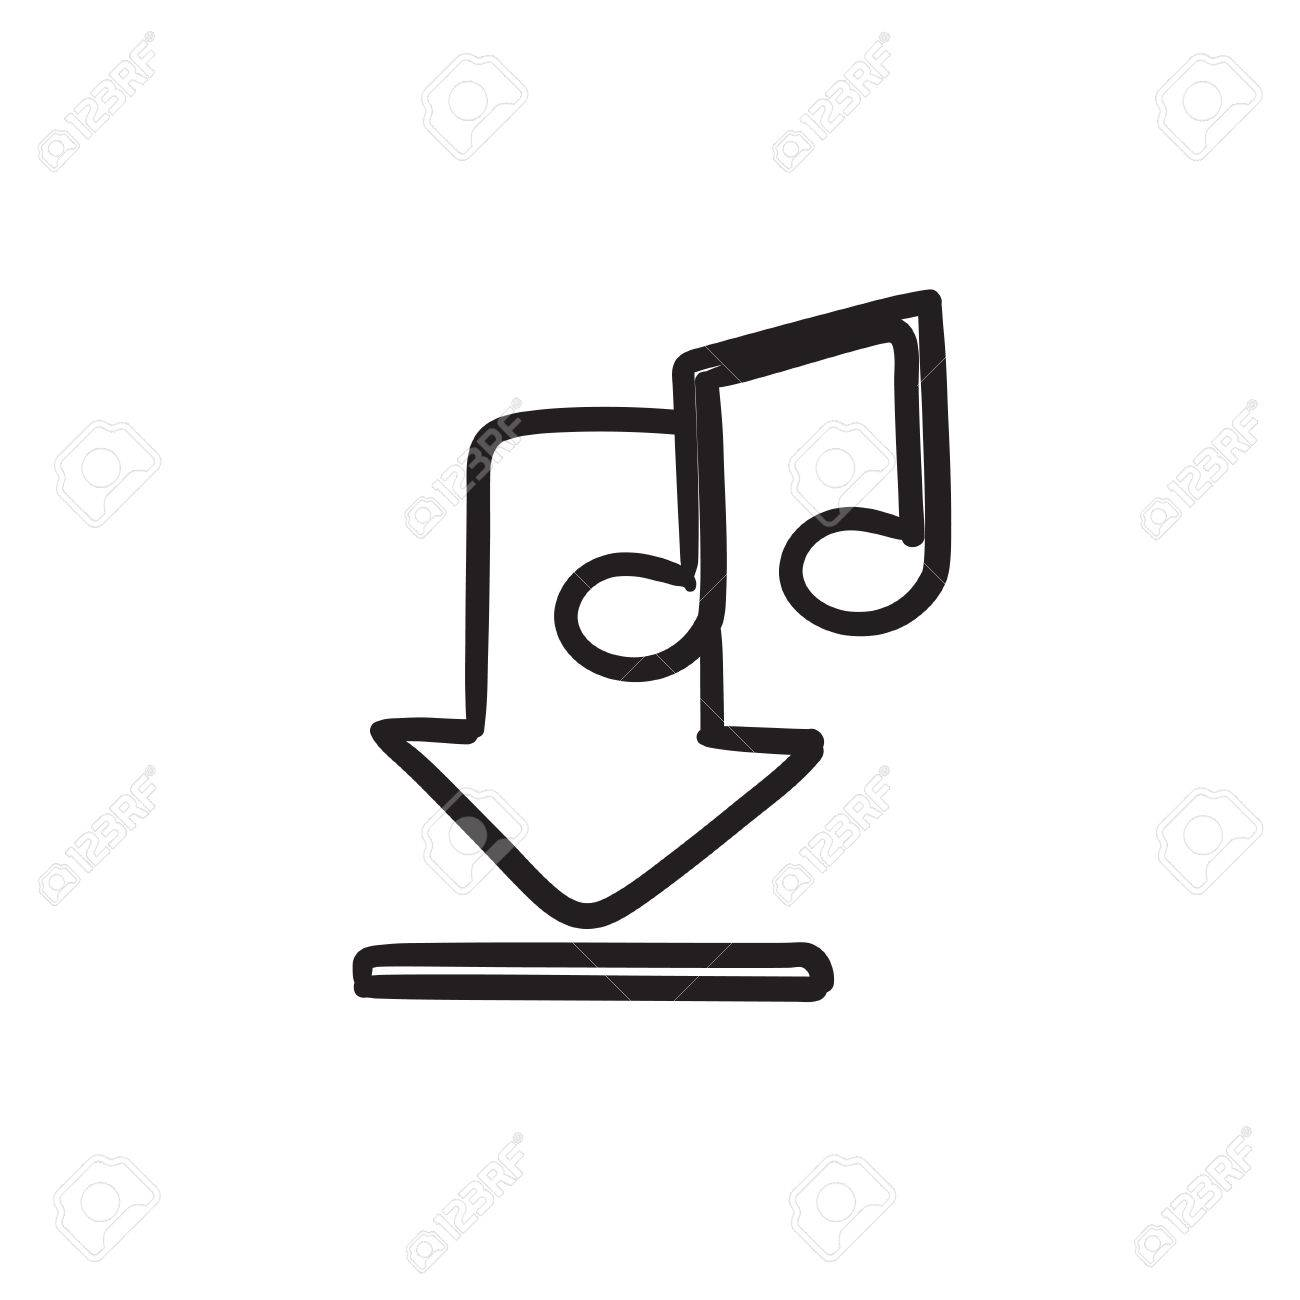 download music vector sketch icon isolated on background hand rh 123rf com free music vector background free music vector icons